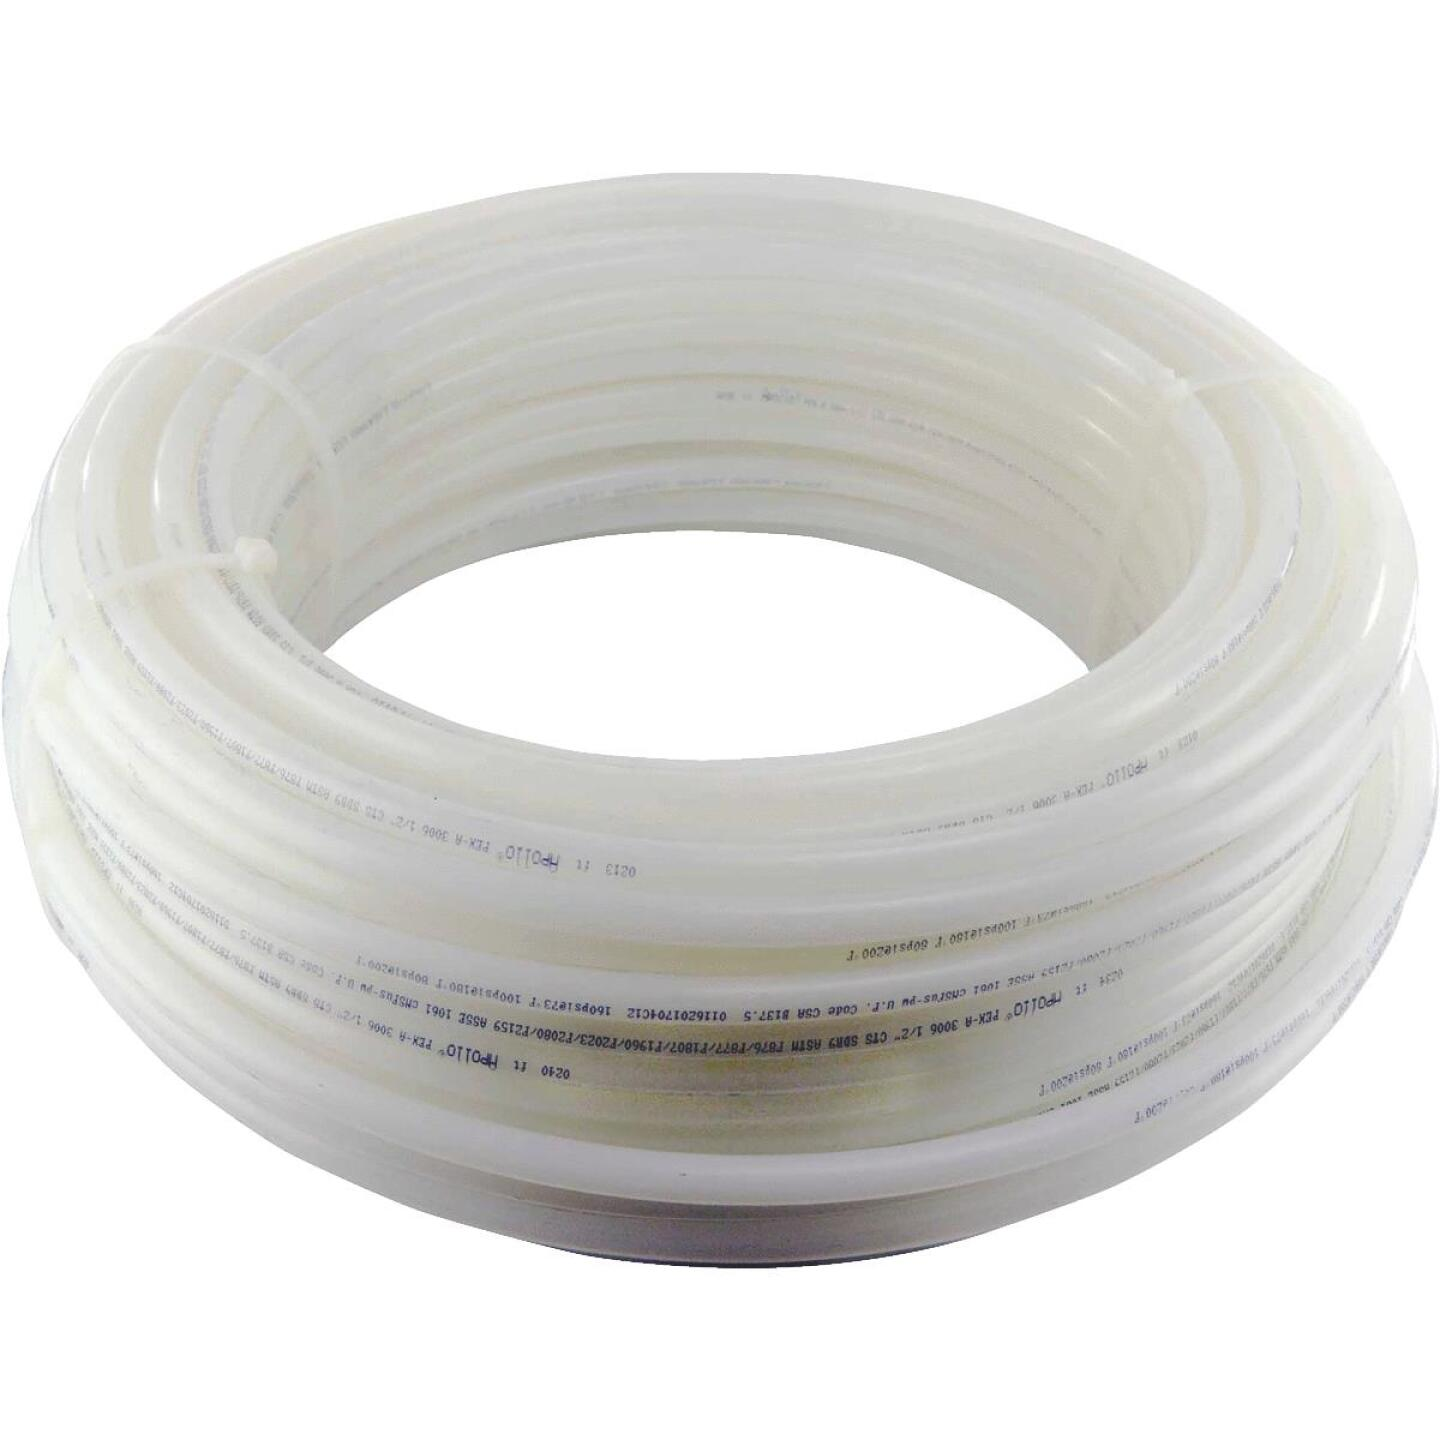 Conbraco 1/2 In. x 300 Ft. White PEX Pipe Type A Coil Image 2